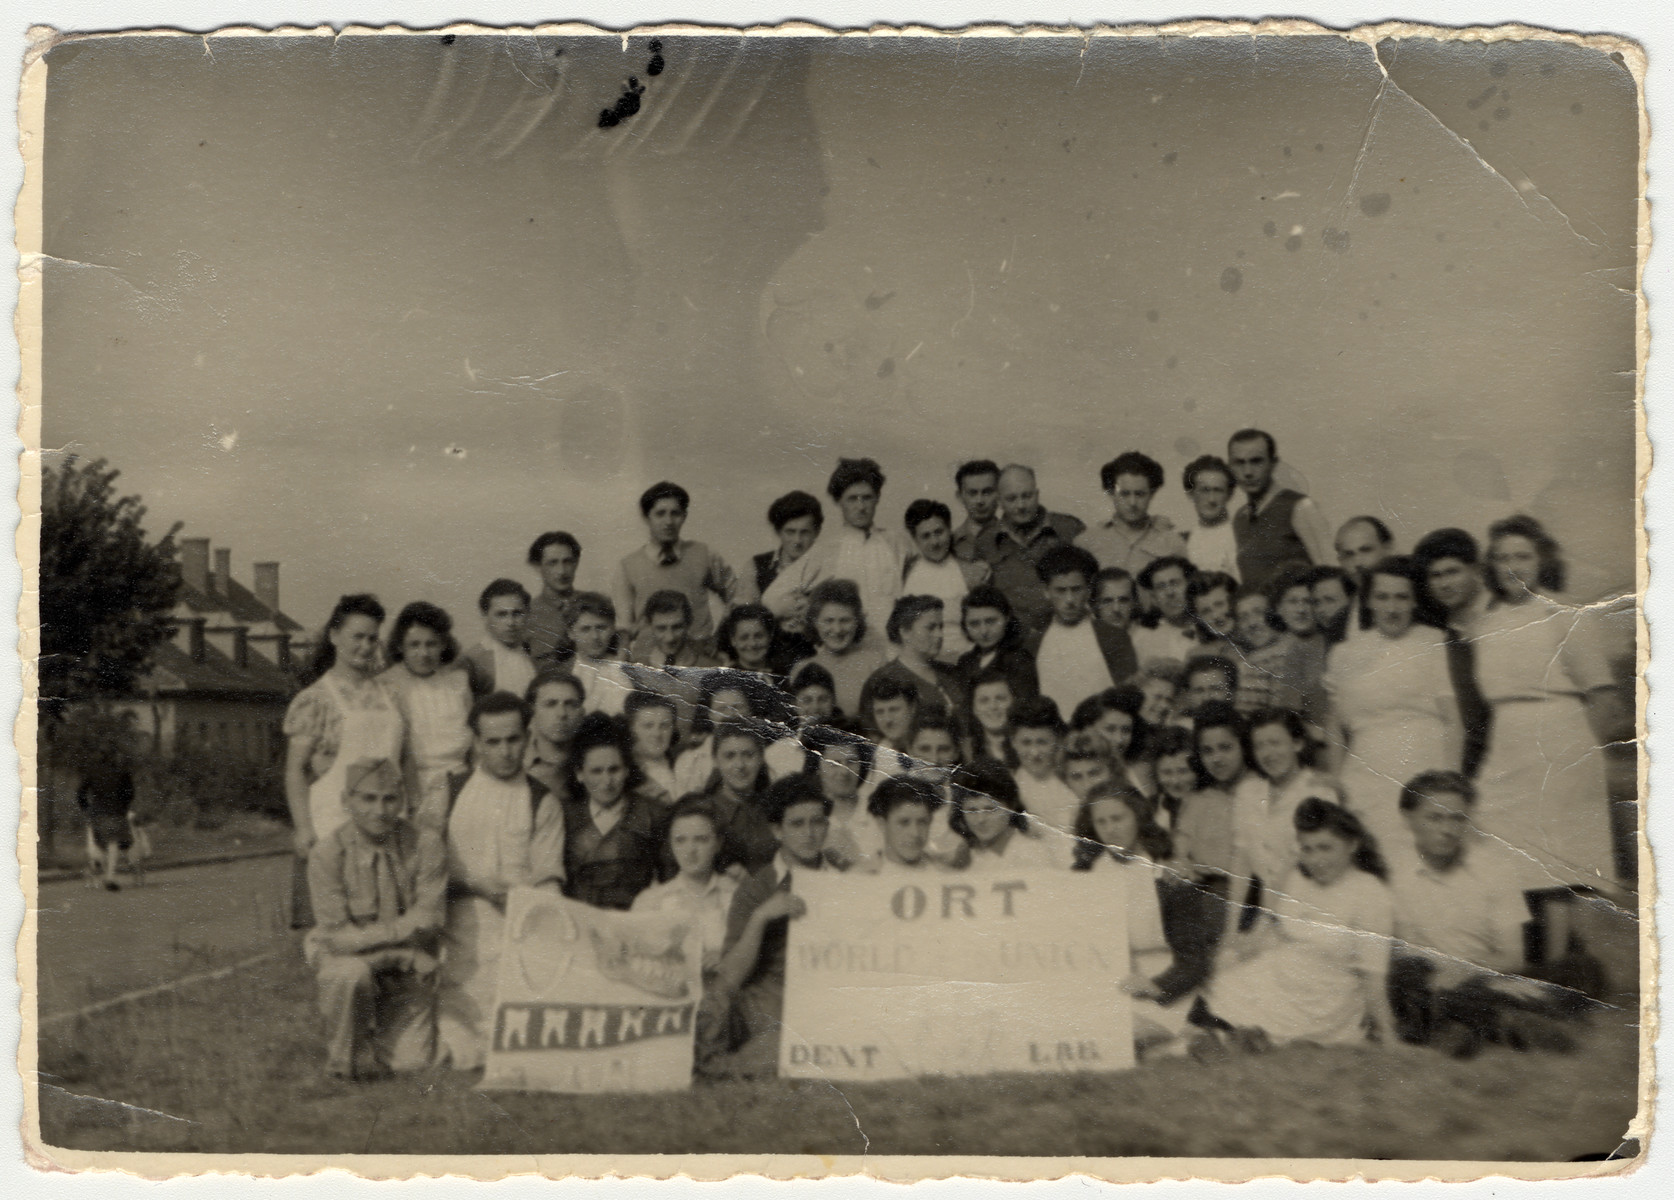 Group portrait of students at the ORT dental technician school in the Bergen-Belsen displaced persons camp.